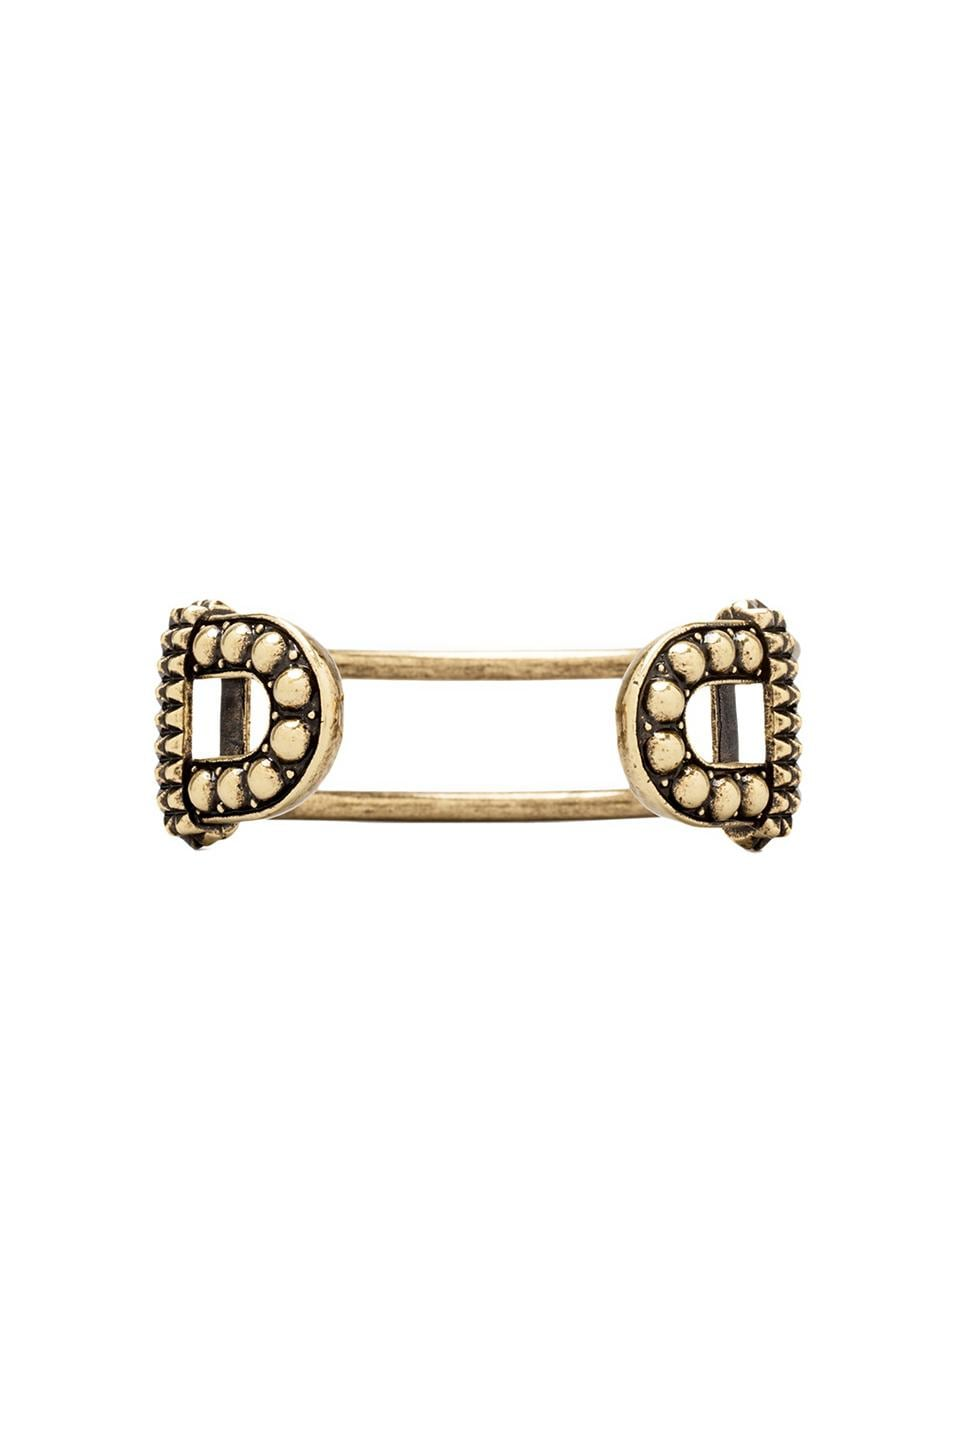 Giles & Brother Skinny Textured Cortina Cuff in Antique Brass